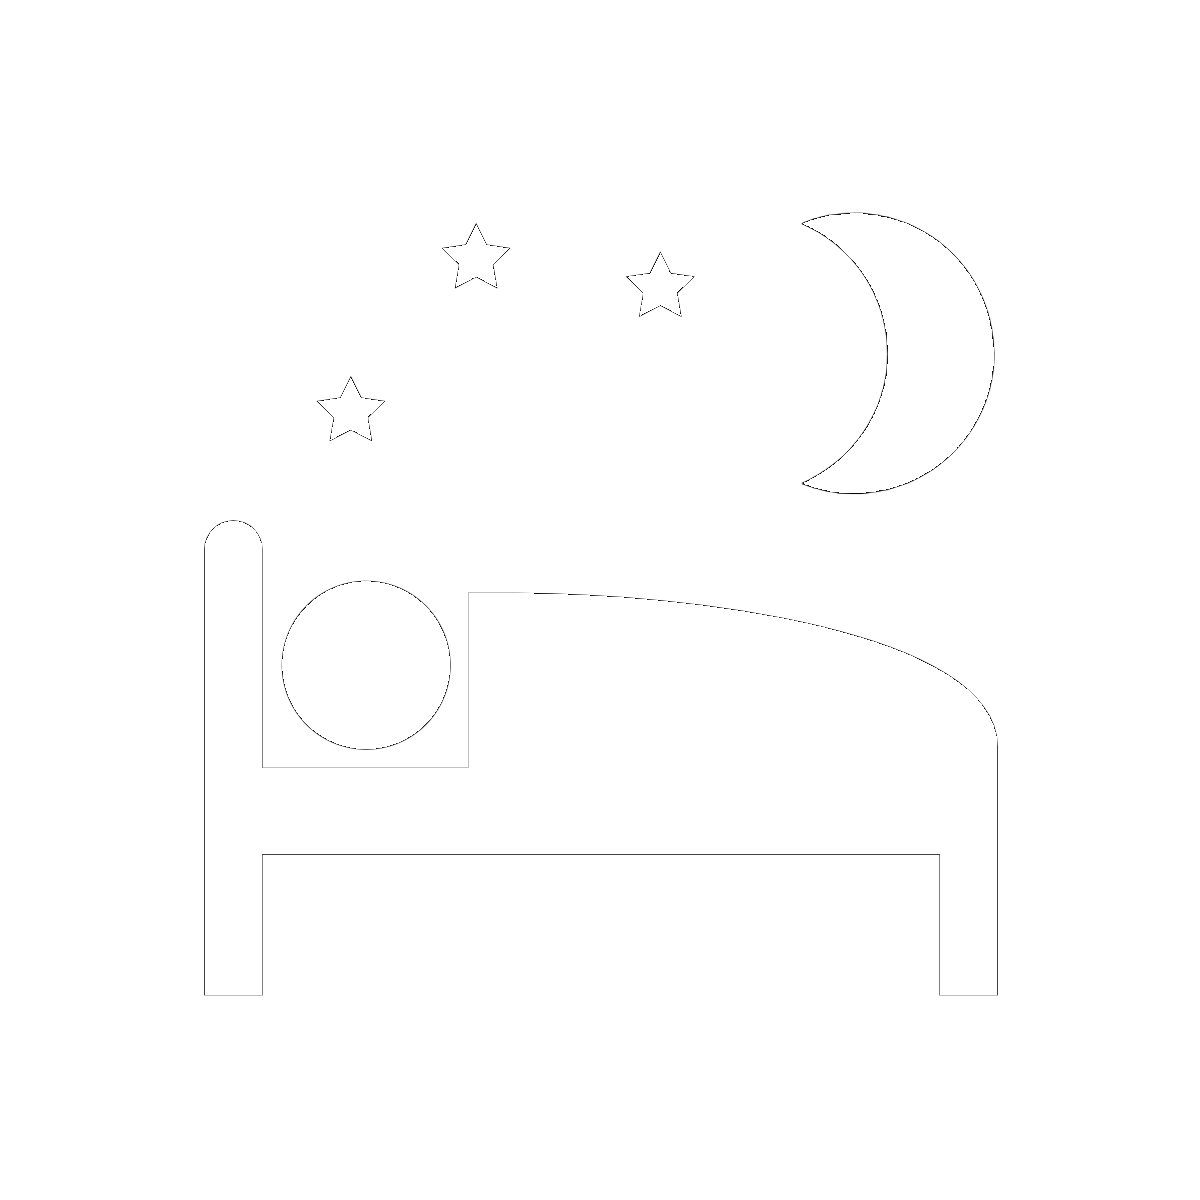 Theme The Comfort and Escape of Sleep